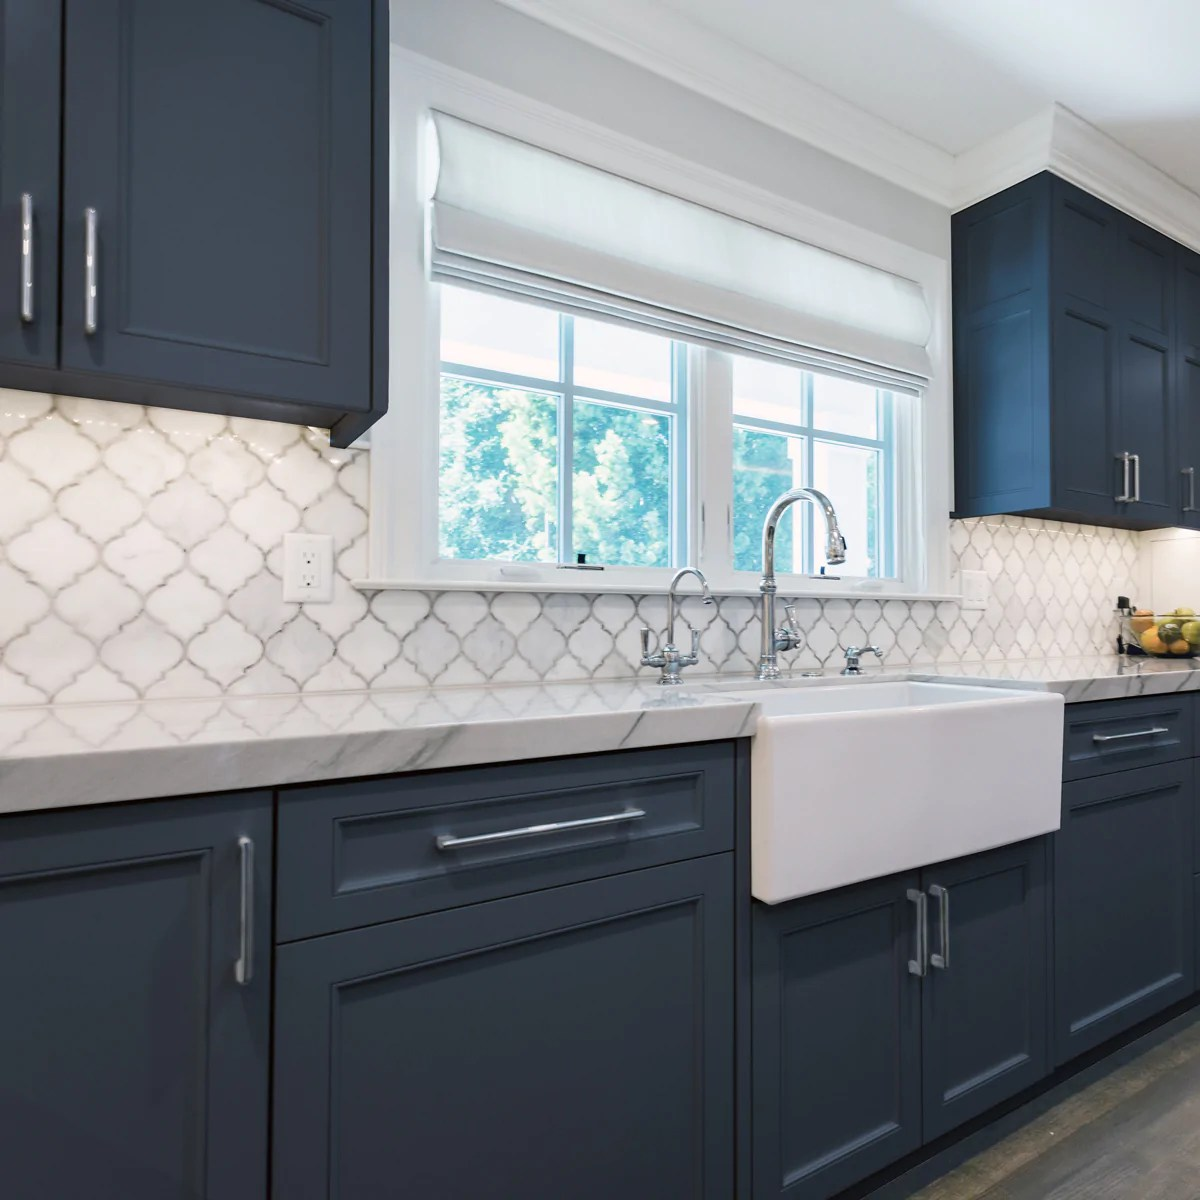 Images Of Painted Kitchen Cabinets Nuvo Cabinet Paint Gallery Giani Inc